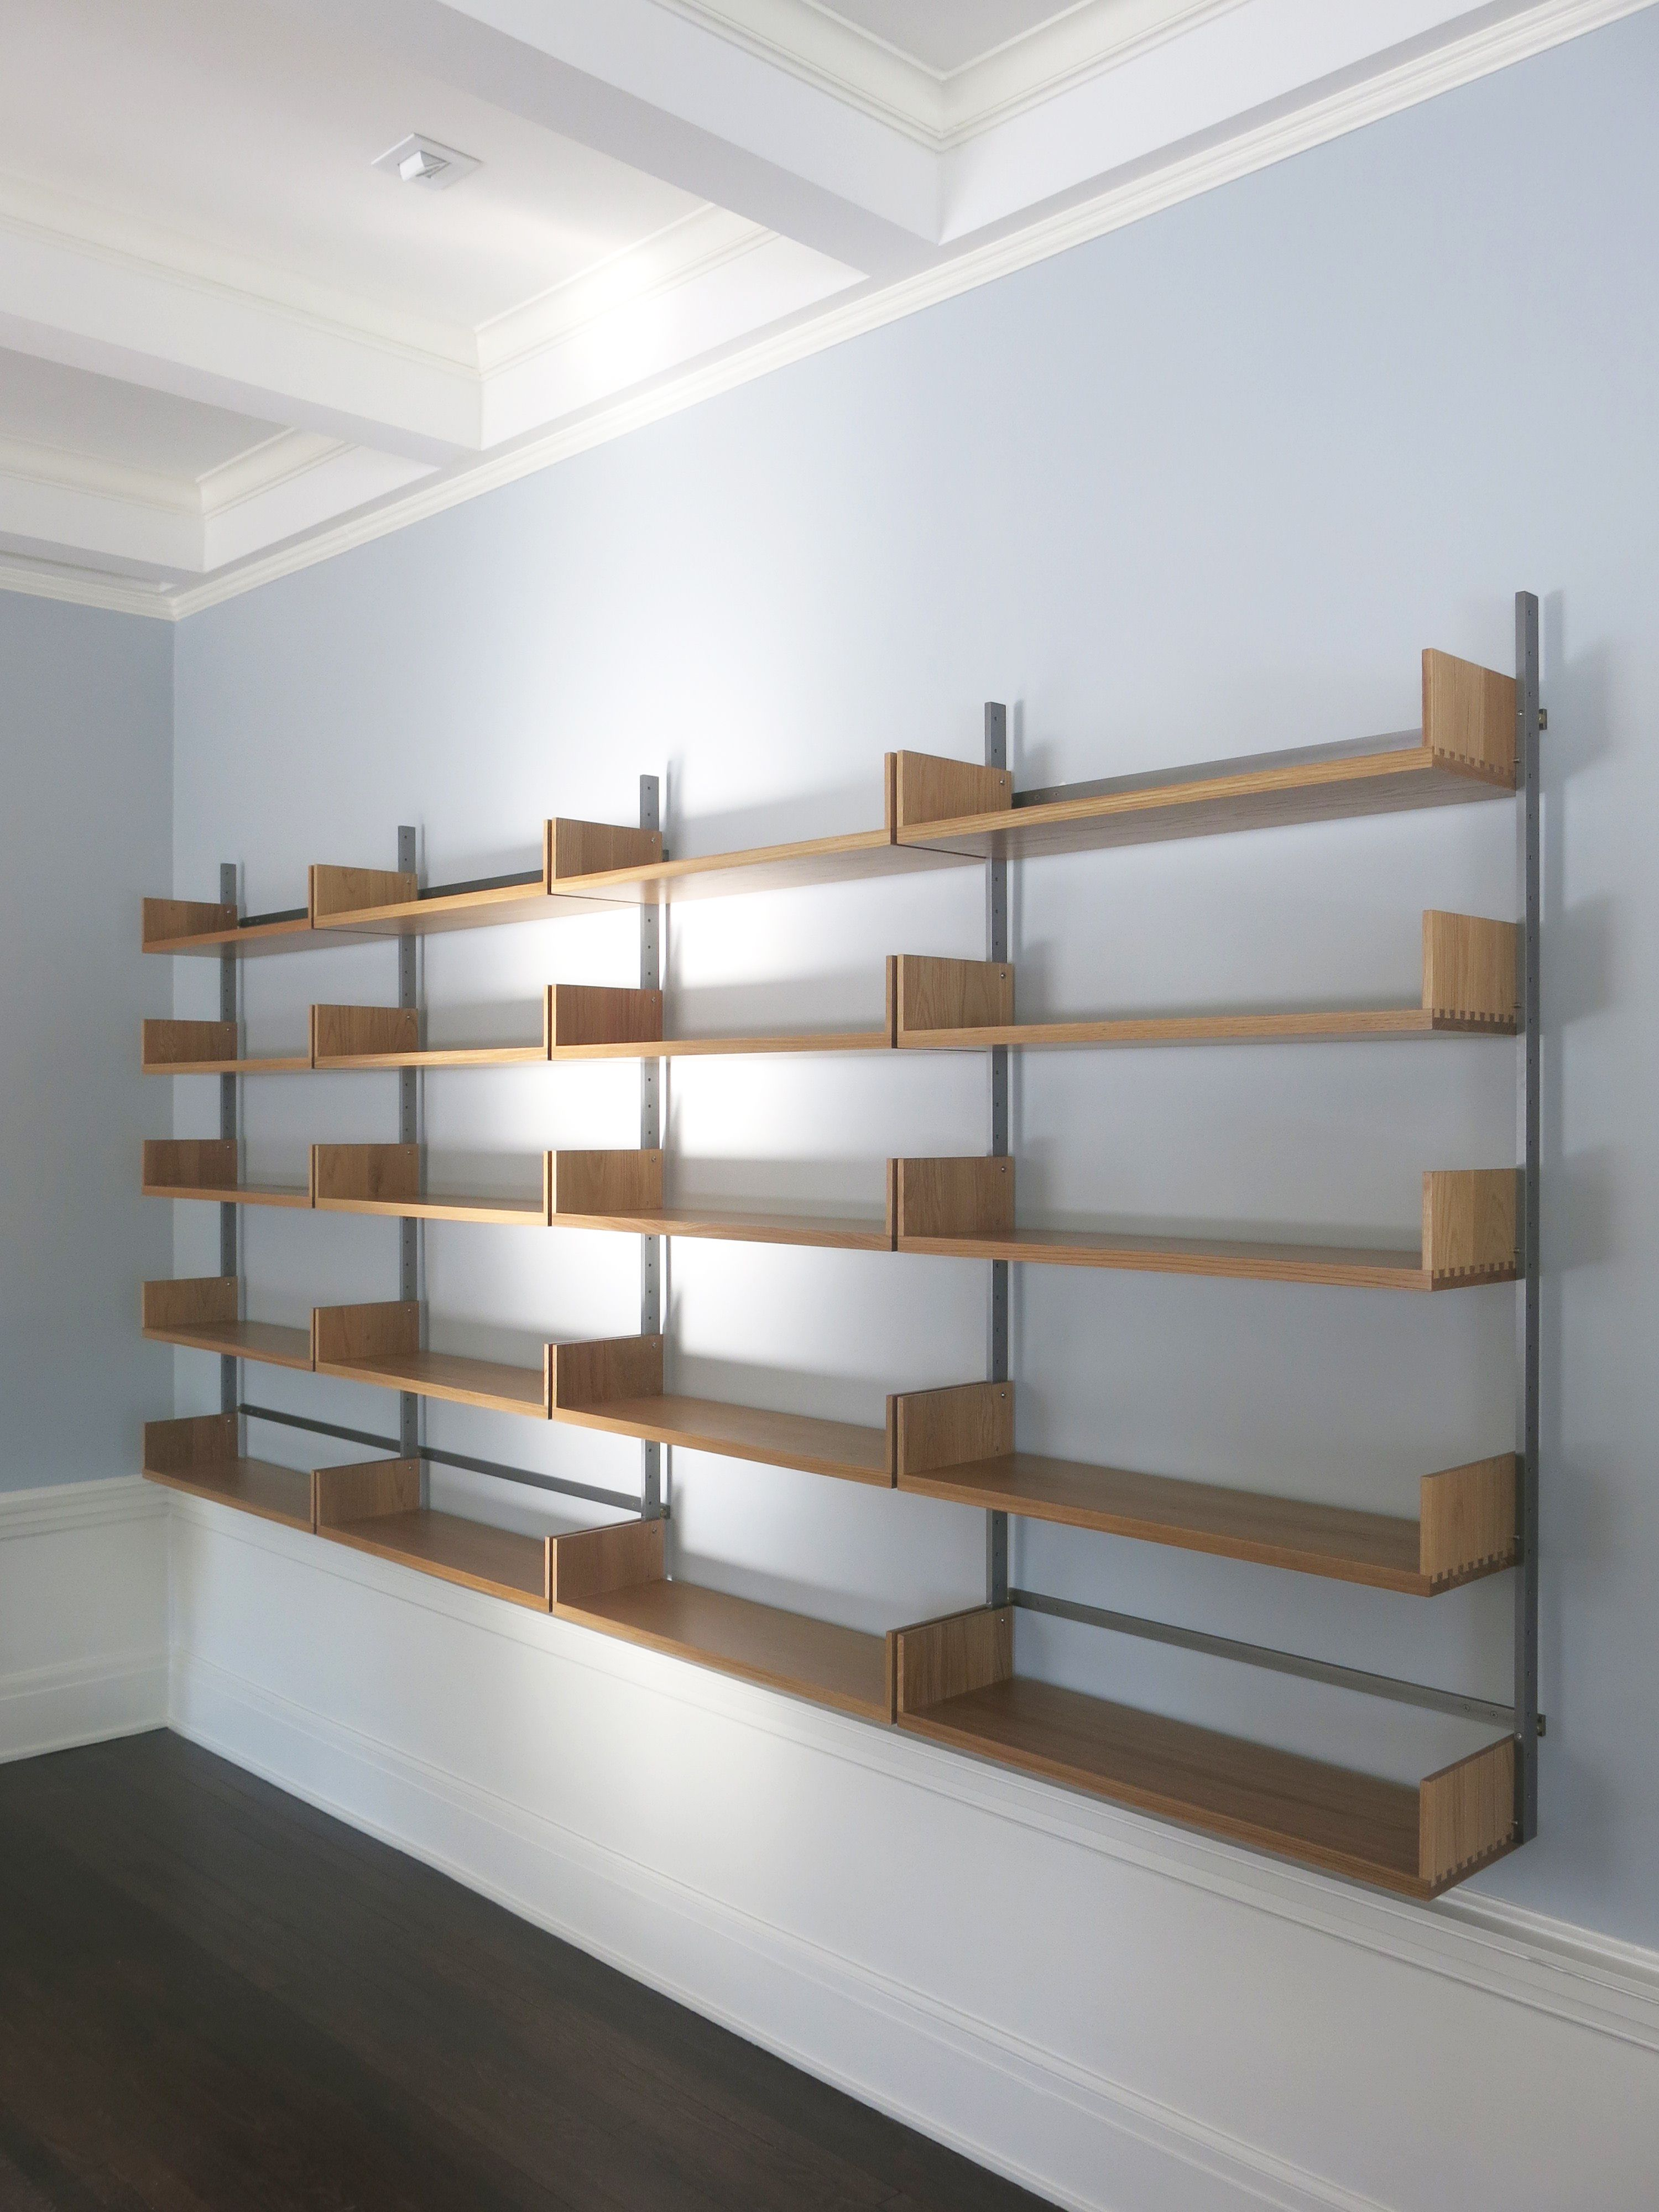 As4 Modular Shelving System In White Oak And Cold Rolled Steel